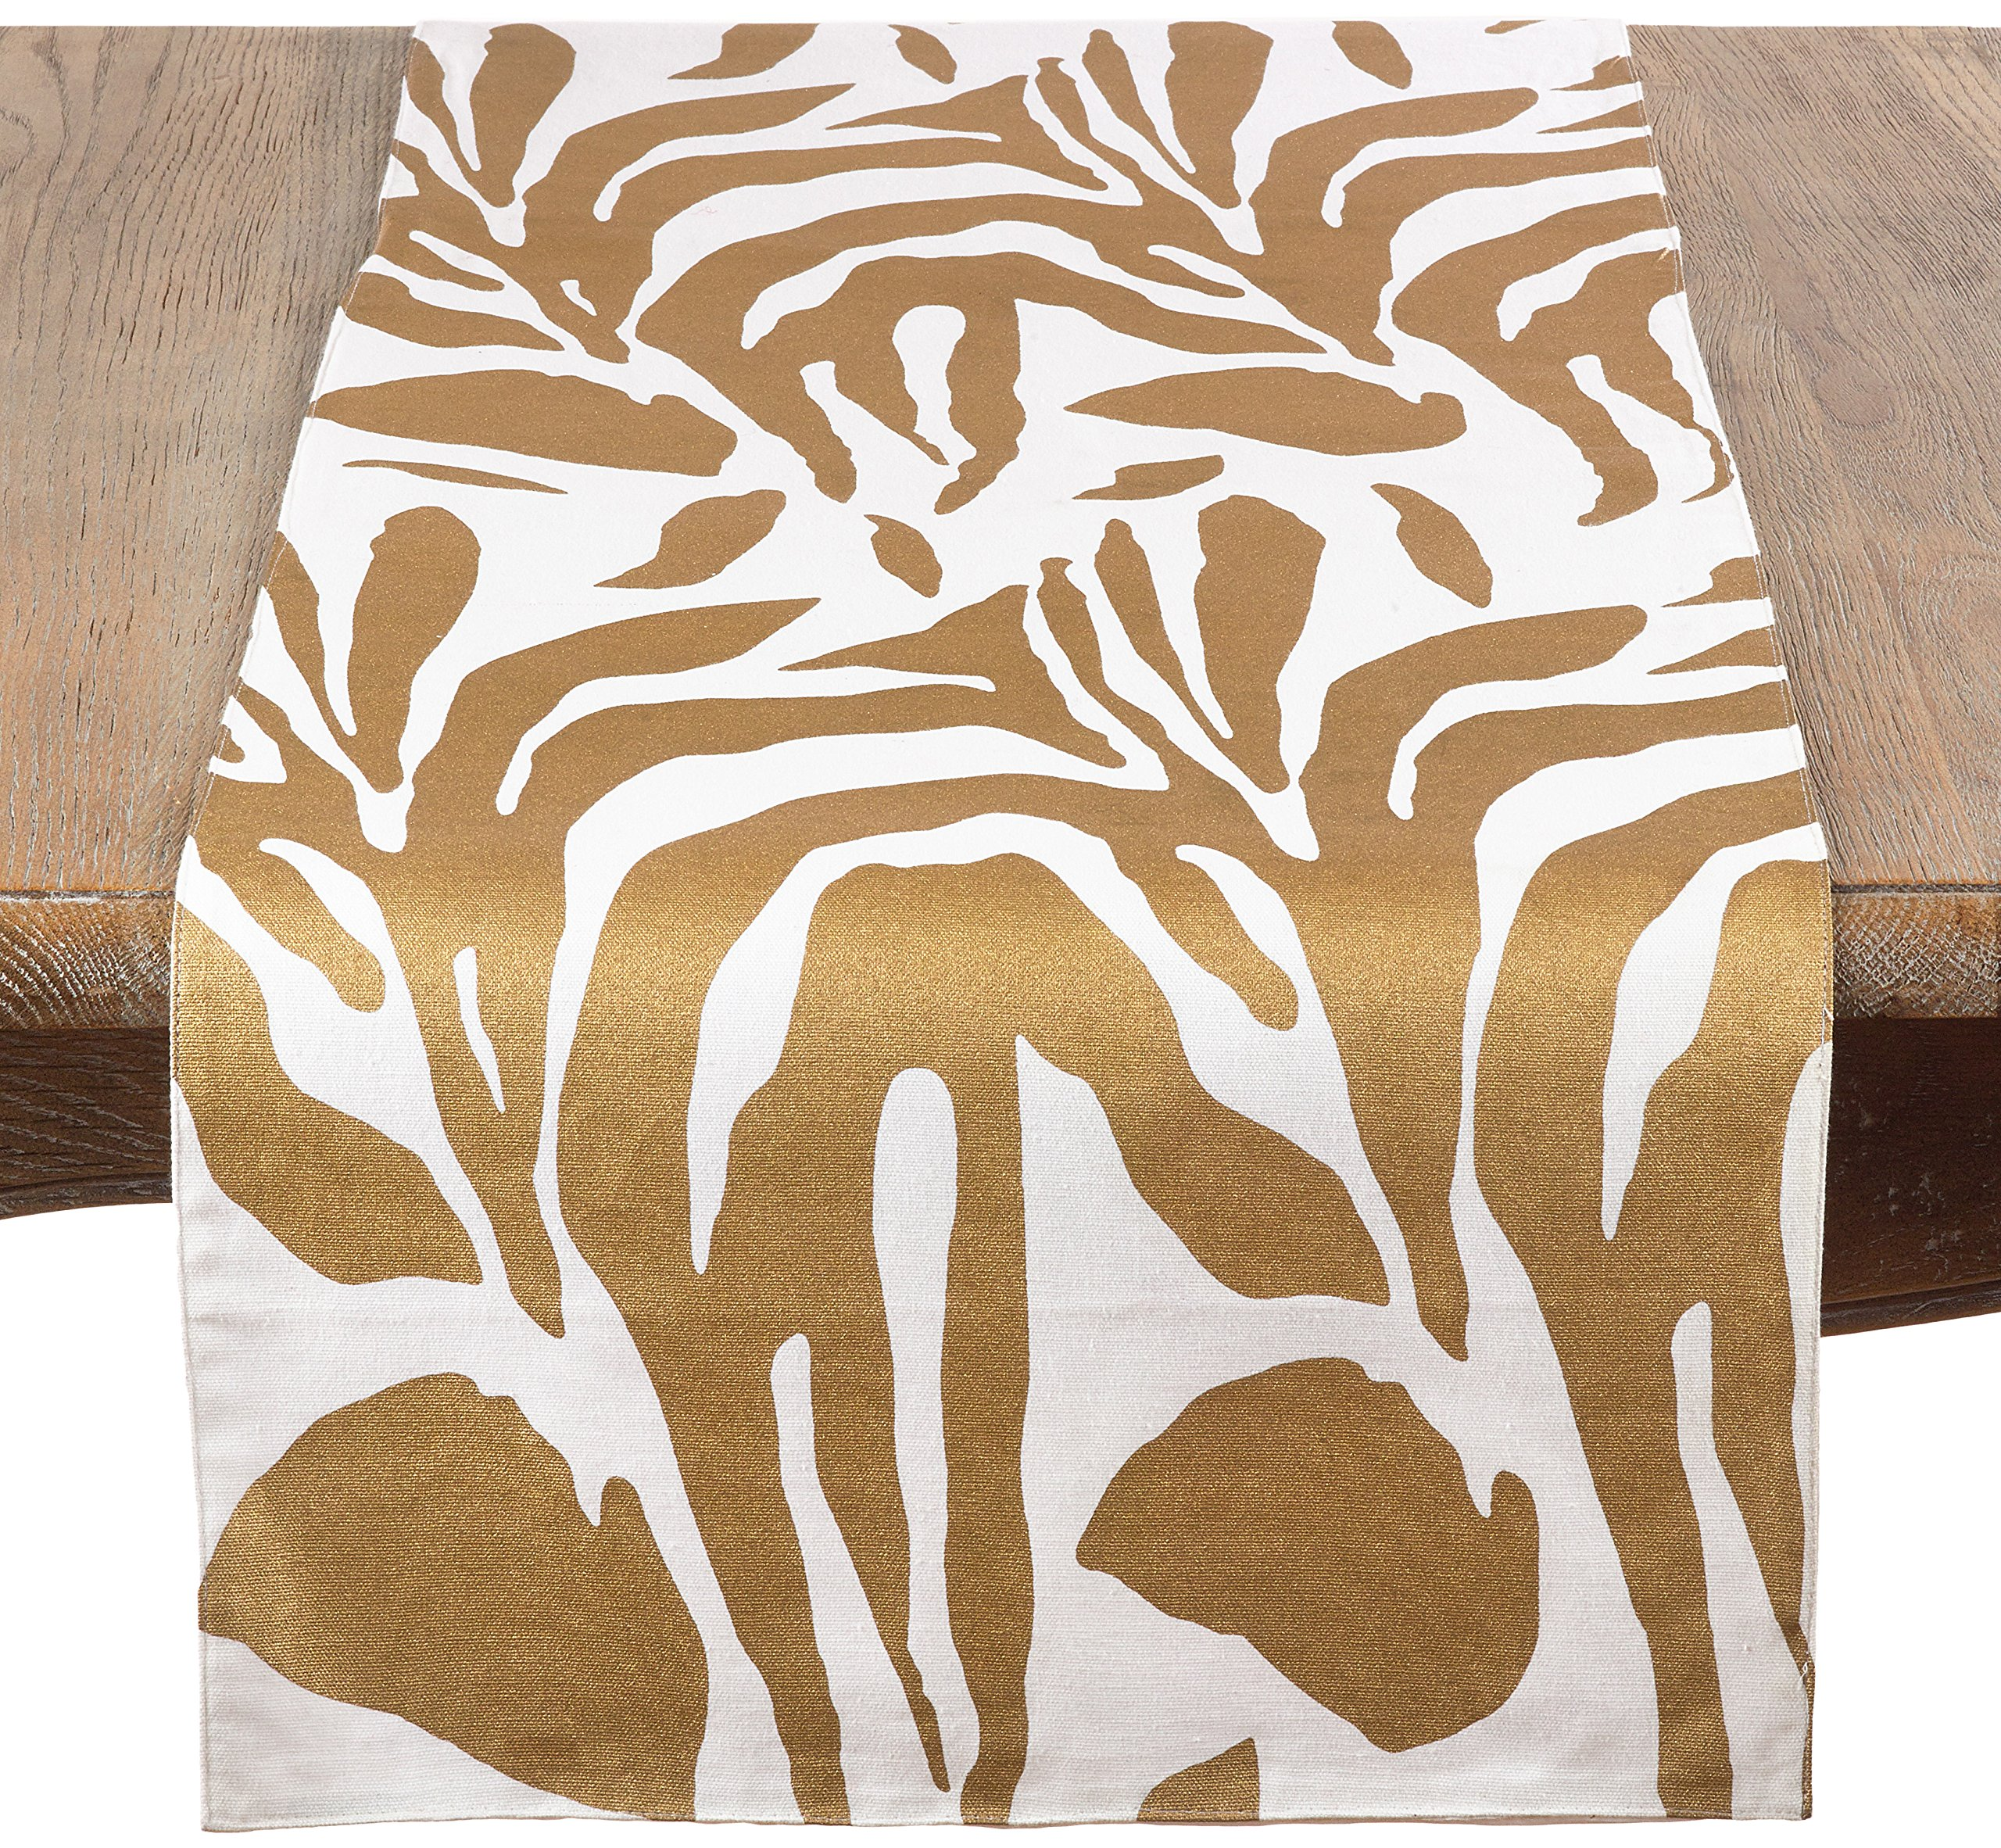 Saro LifeStyle 3575.GL1672B Metallic Animal Print Table Runner, Gold, 16''x72''